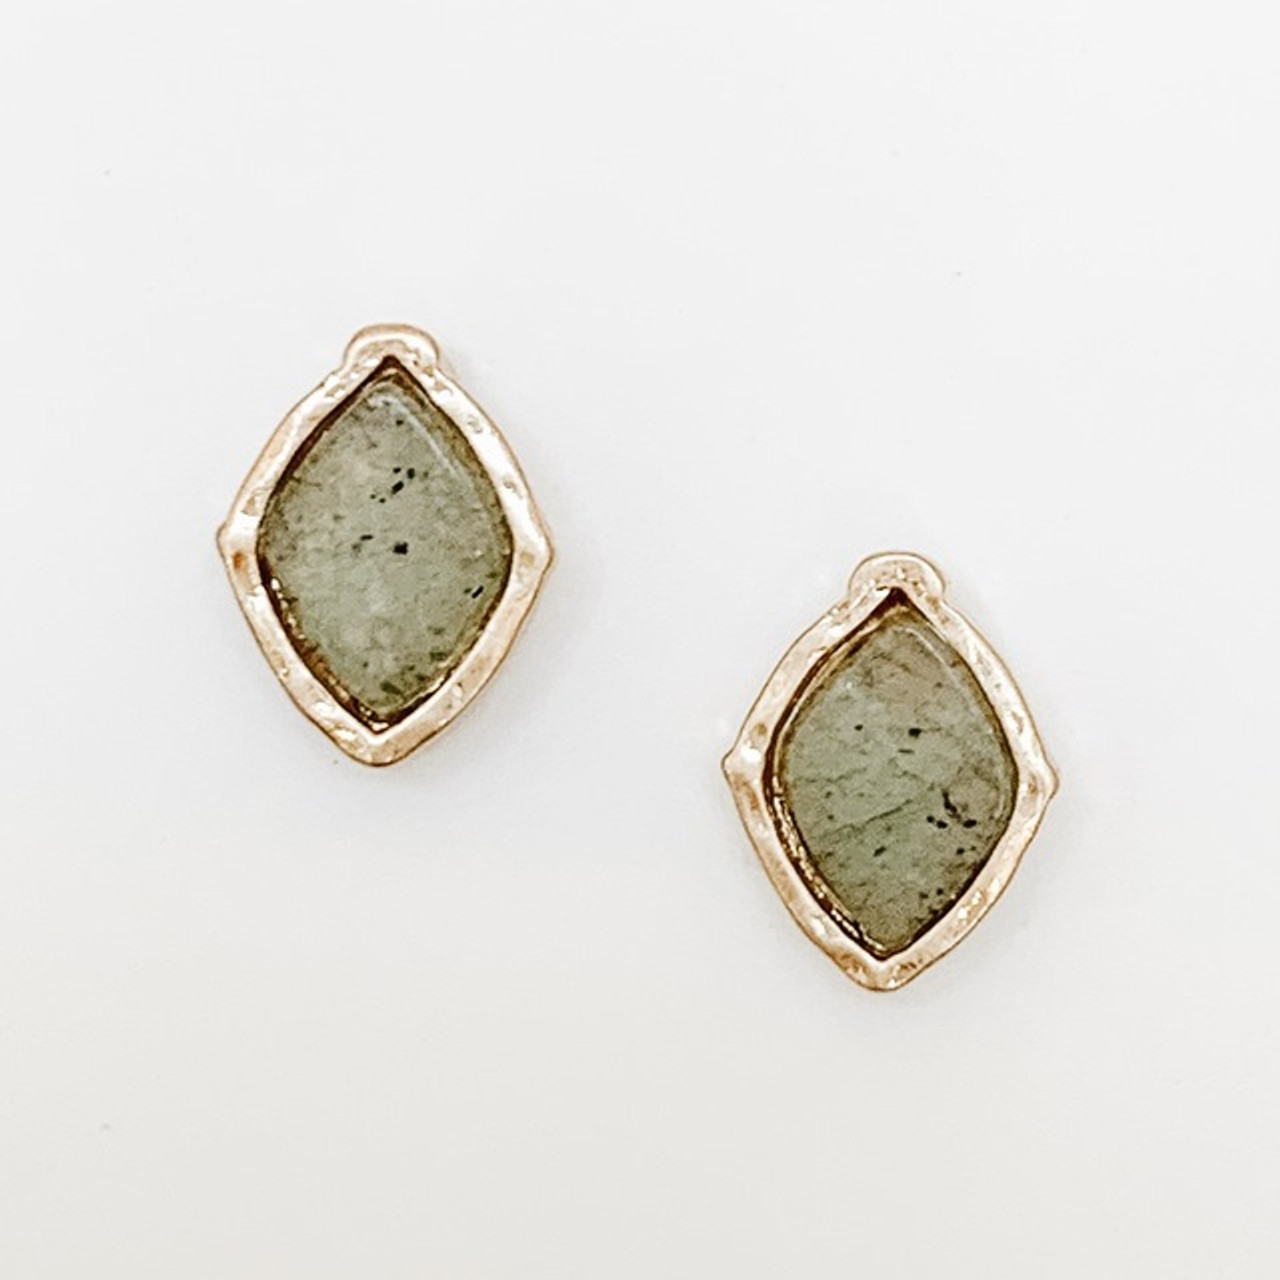 GREY stone post earrings with gold frame, Nickel and lead free.